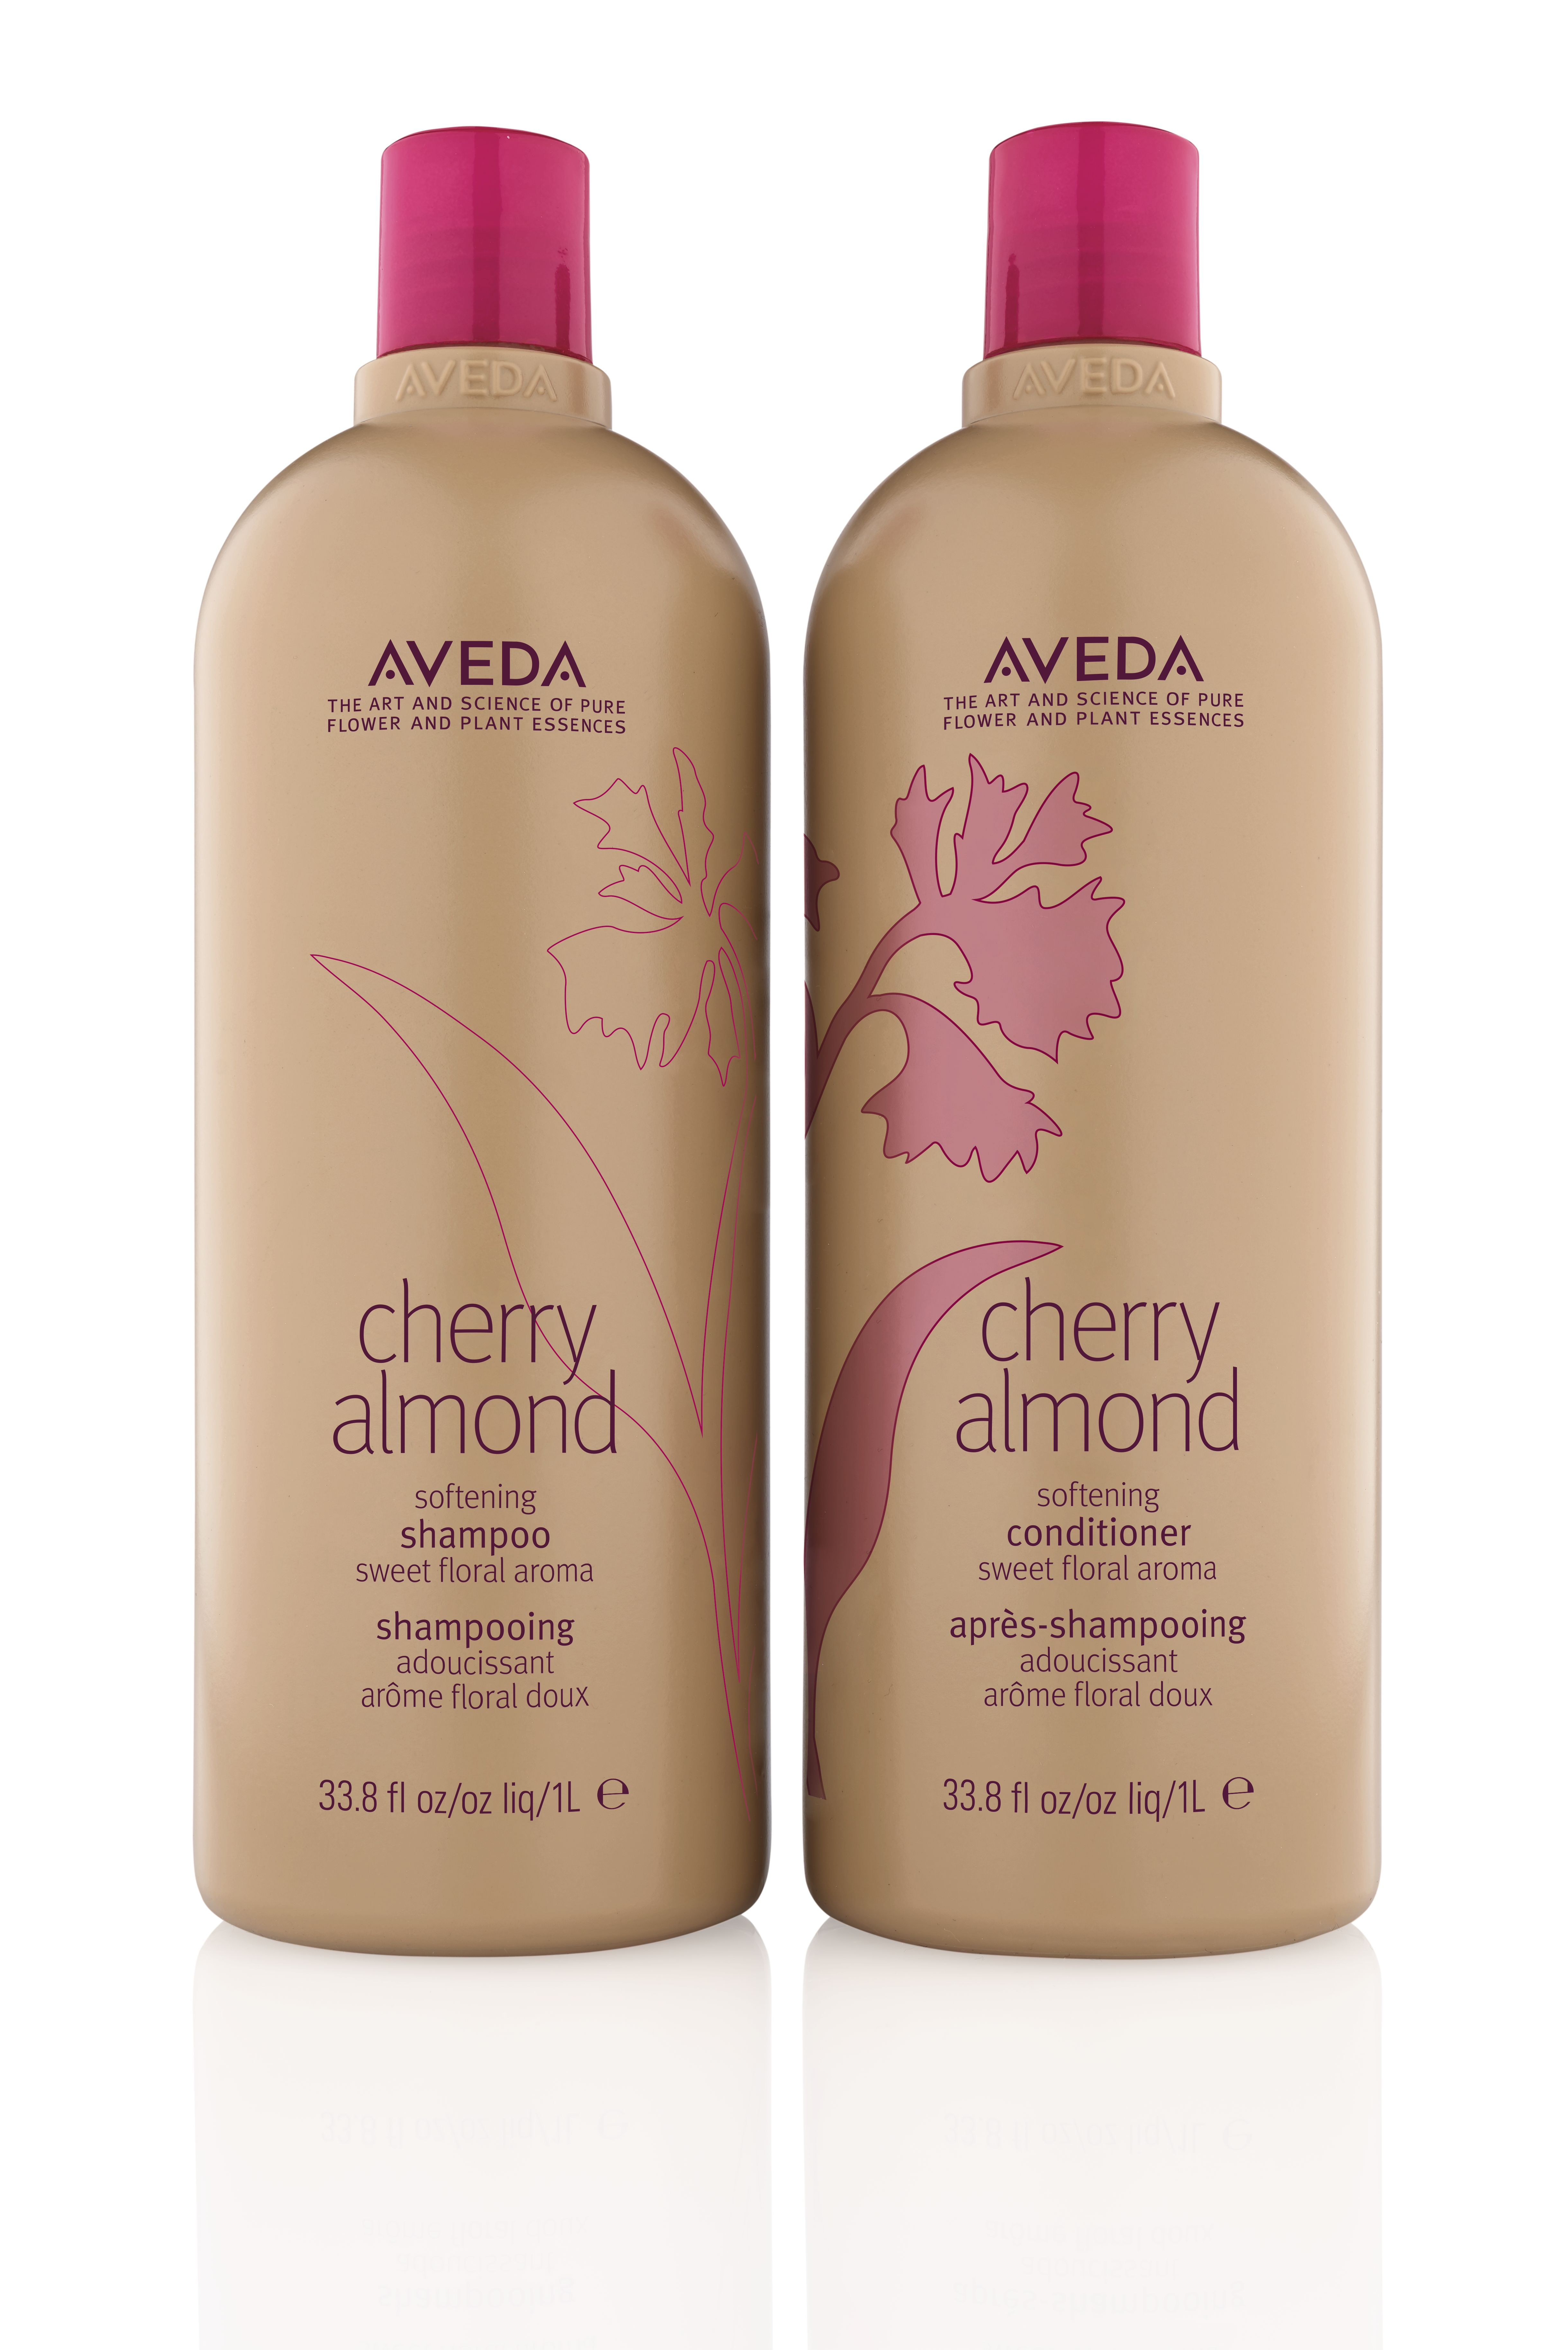 April-new-beauty-launches-Aveda- Cherry Almond Shampoo and Conditioner